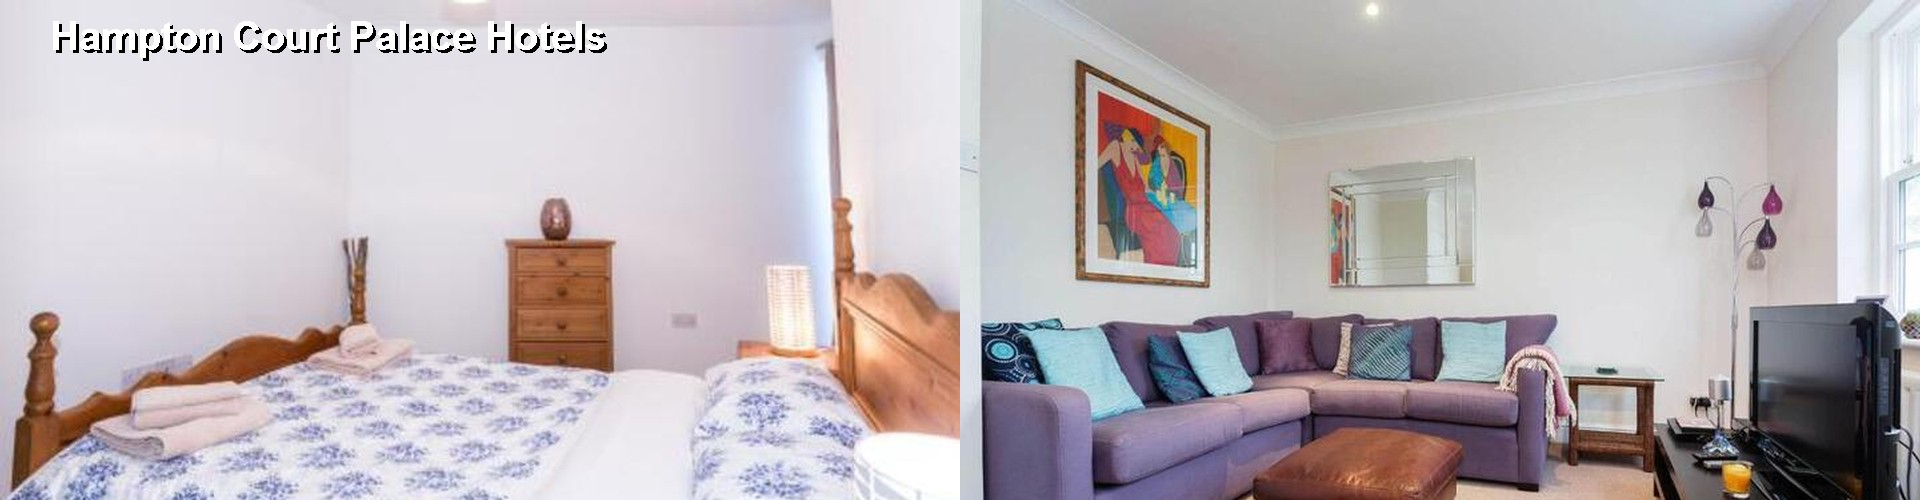 5 Best Hotels near Hampton Court Palace